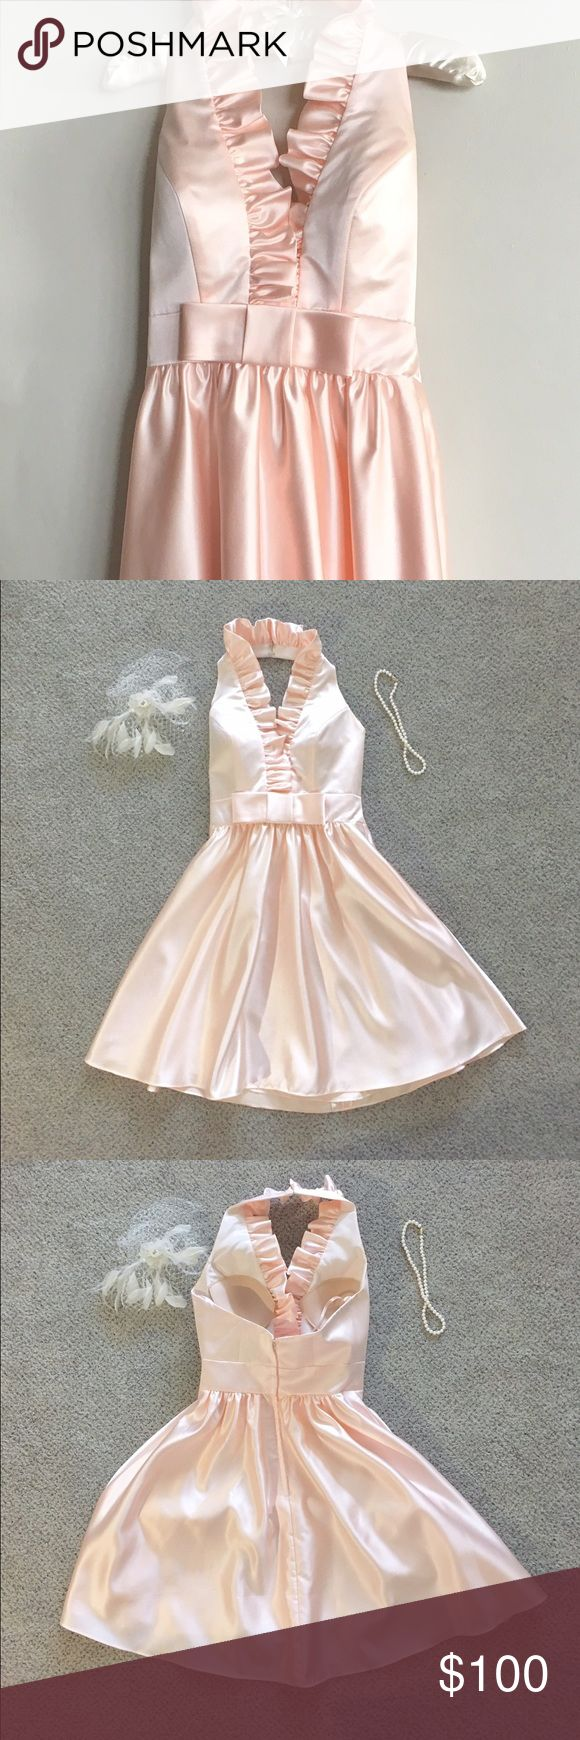 """Alfred Sung Ruffle Neck A-line Dress Perfect condition! Worn once. Ruffle Neck Short Alfred Sung Bridesmaid Dress in blush pink. Style no. D461. Halter top. Sewn in bra cups. Bow detail at waist. A-line, knee-length skirt. Zip back. Bust: 32"""", Waist: 27"""", Length: 35"""" (from neck halter to hem.) Size 4 but altered to fit size 2. Alfred Sung Dresses Wedding"""